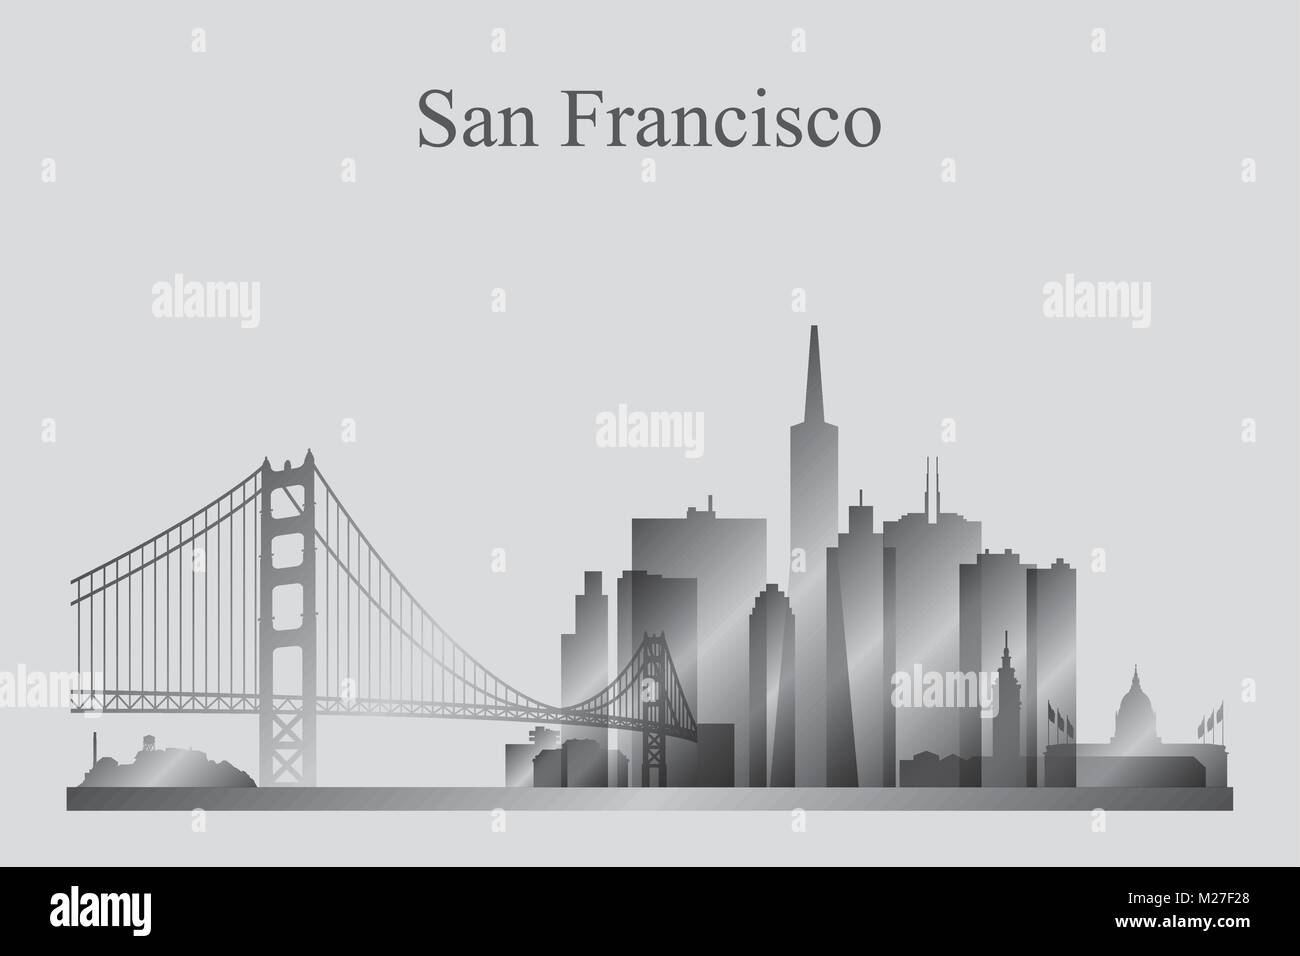 San Francisco city skyline silhouette in grayscale, vector illustration - Stock Image